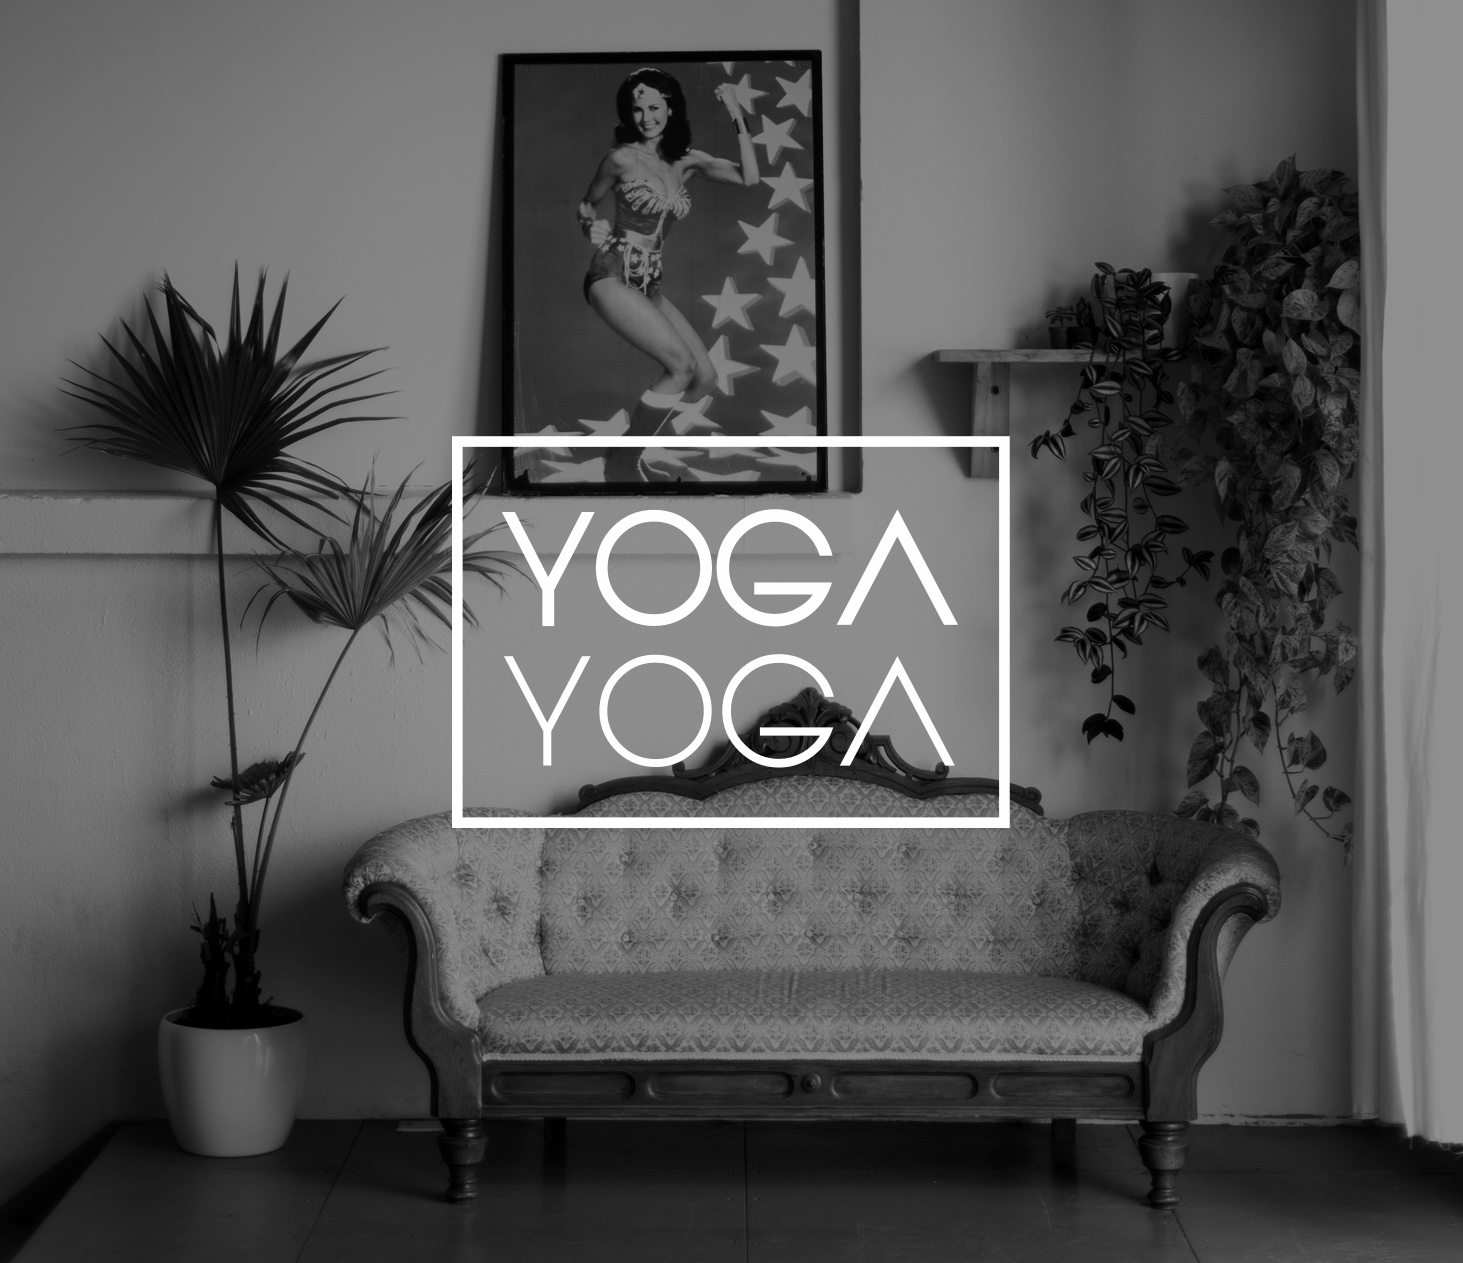 studio p o l i c y. - If you make yoga at our studio, these are our policies AND CODE that help make our studio run smoothly, thank you:• Signing in/out for class must be done within 2 hours of the class start time. Late cancellations or no shows are billed 1 class (deducted from class passes) or $15 for members (charged credit card on file).• We open 5-10 minutes before class. No need to arrive 30 minutes early to claim your spot. We keep classes to a maximum of 10 students for the best yoga making experience.• For the safety of our students and their property, we lock the door at the start of each class.• No refunds or transfers of passes or memberships.• Studio hours for classes and drop-bys are:7-9am / 12-2pm / 6-9pmAll other visits are by appointment only. Email or text us to set something up, or contact us here!